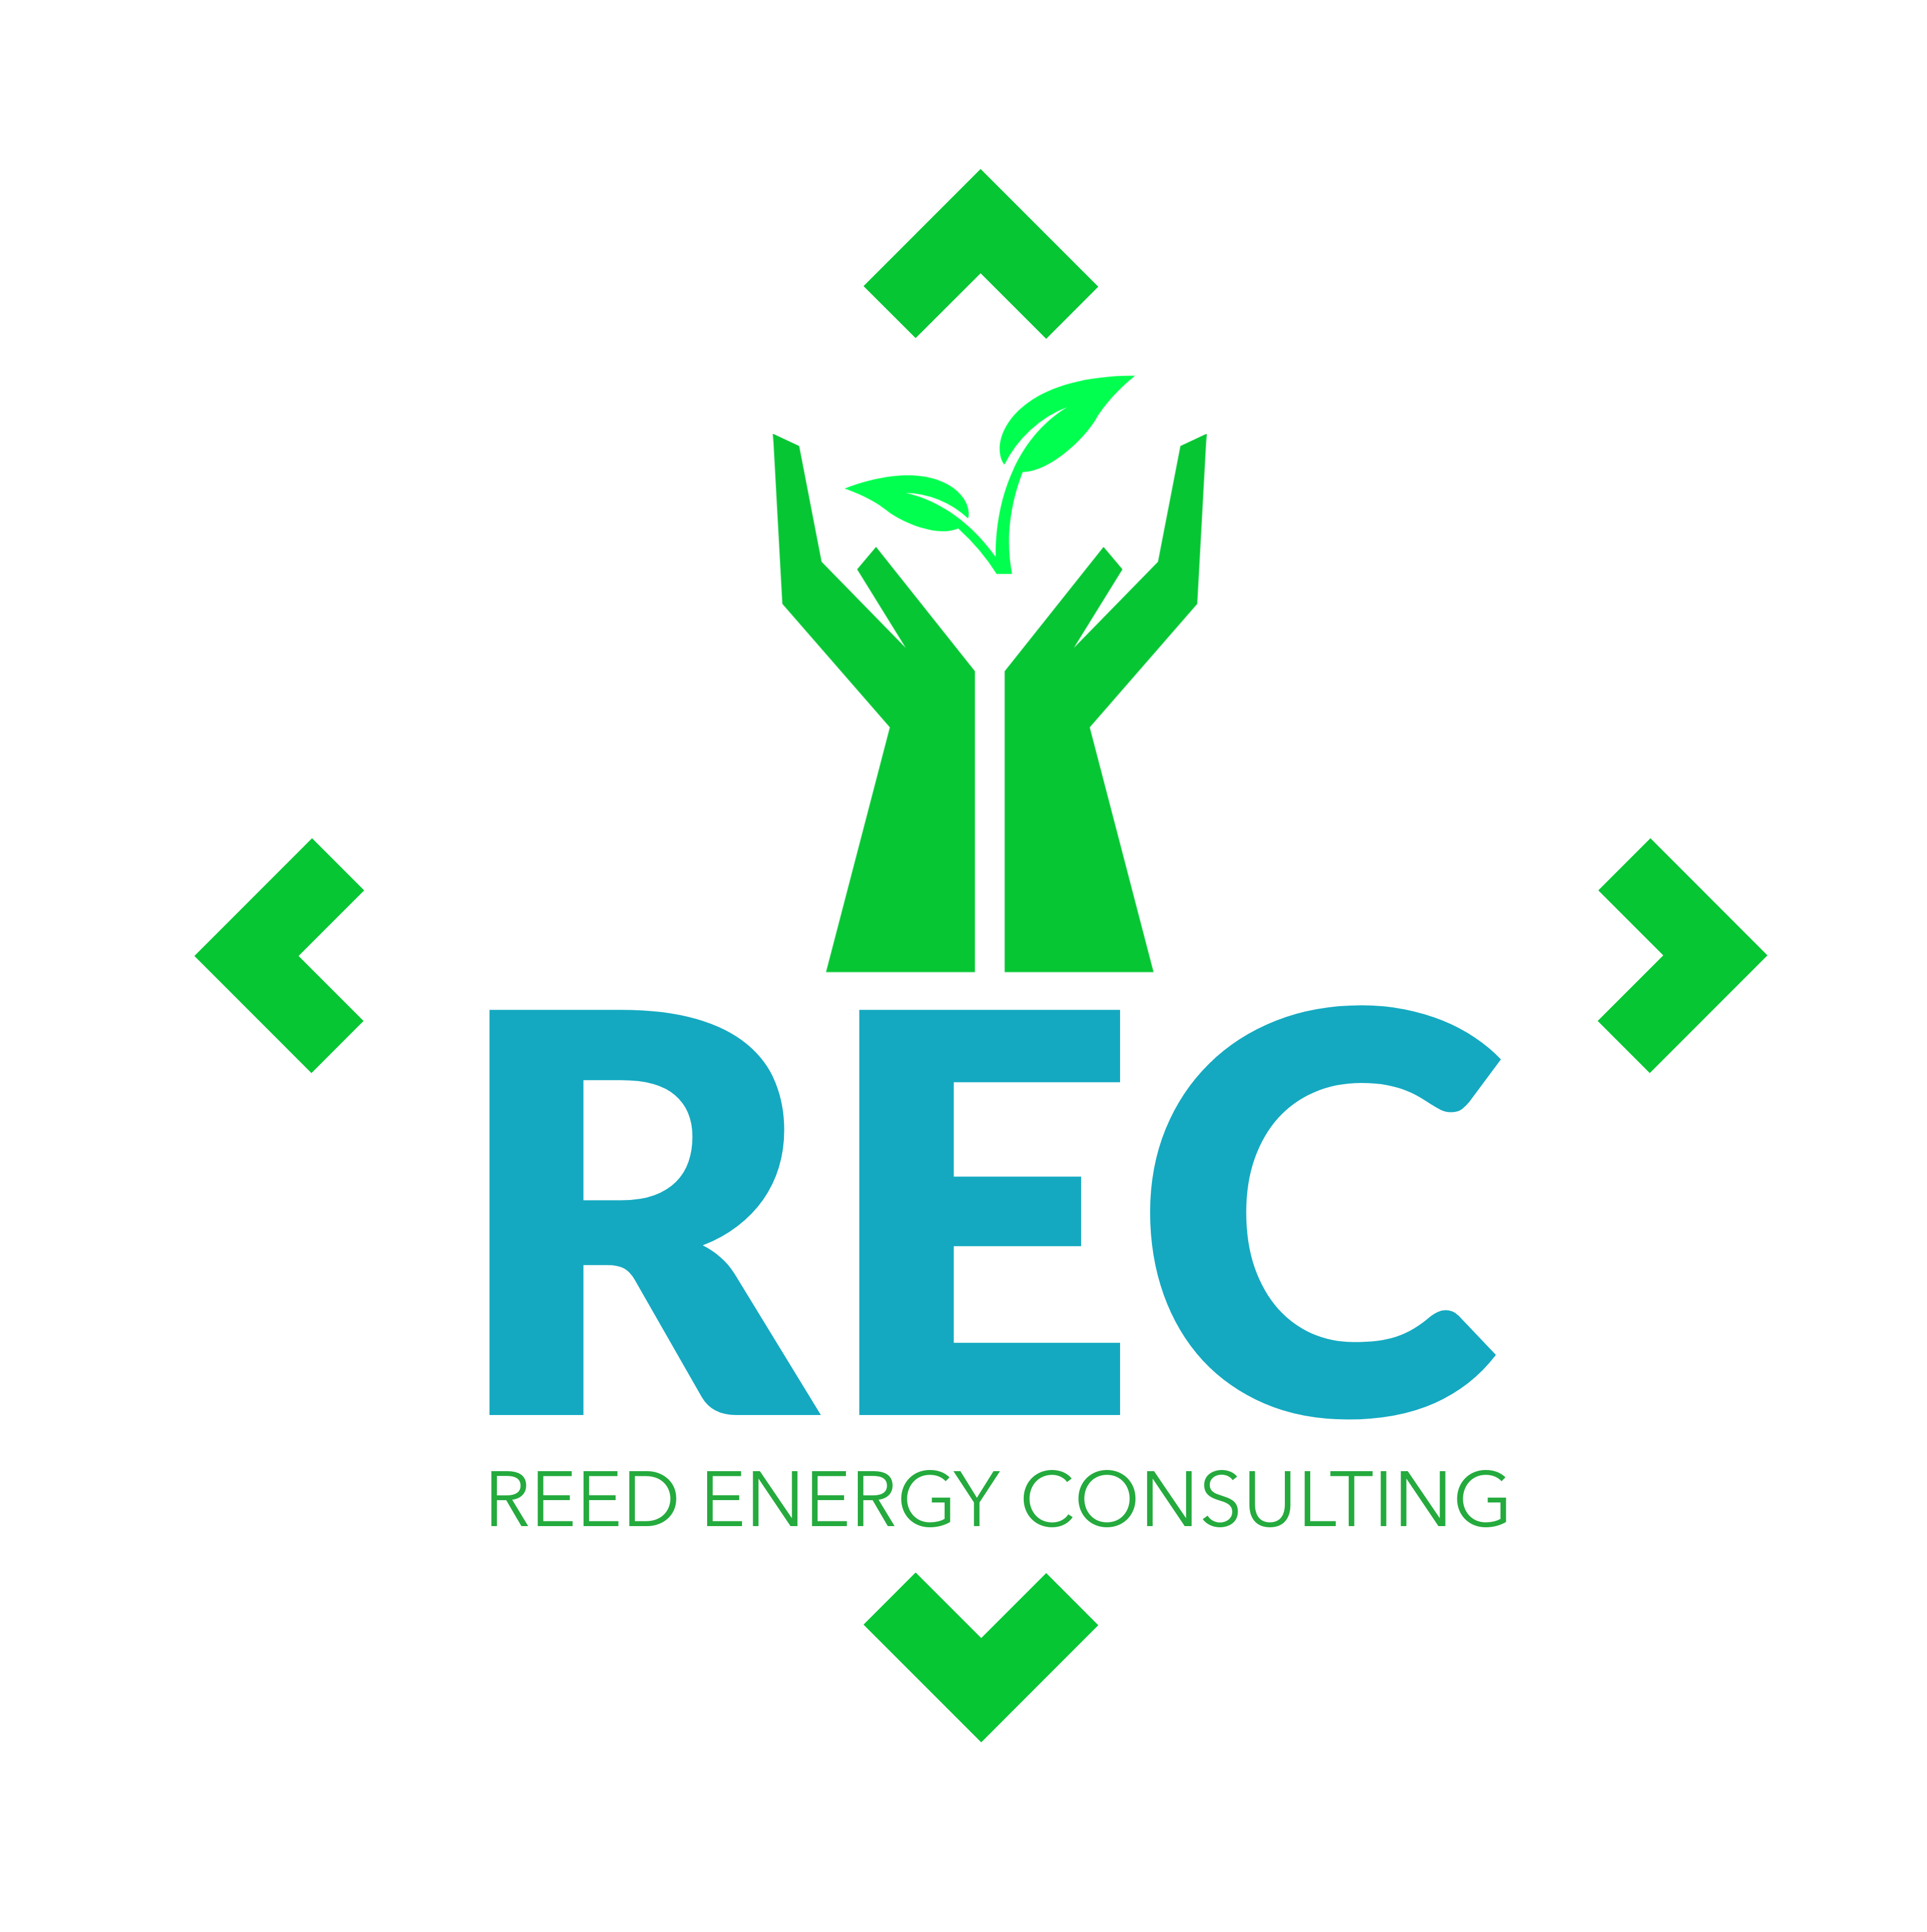 Reed Energy Consulting